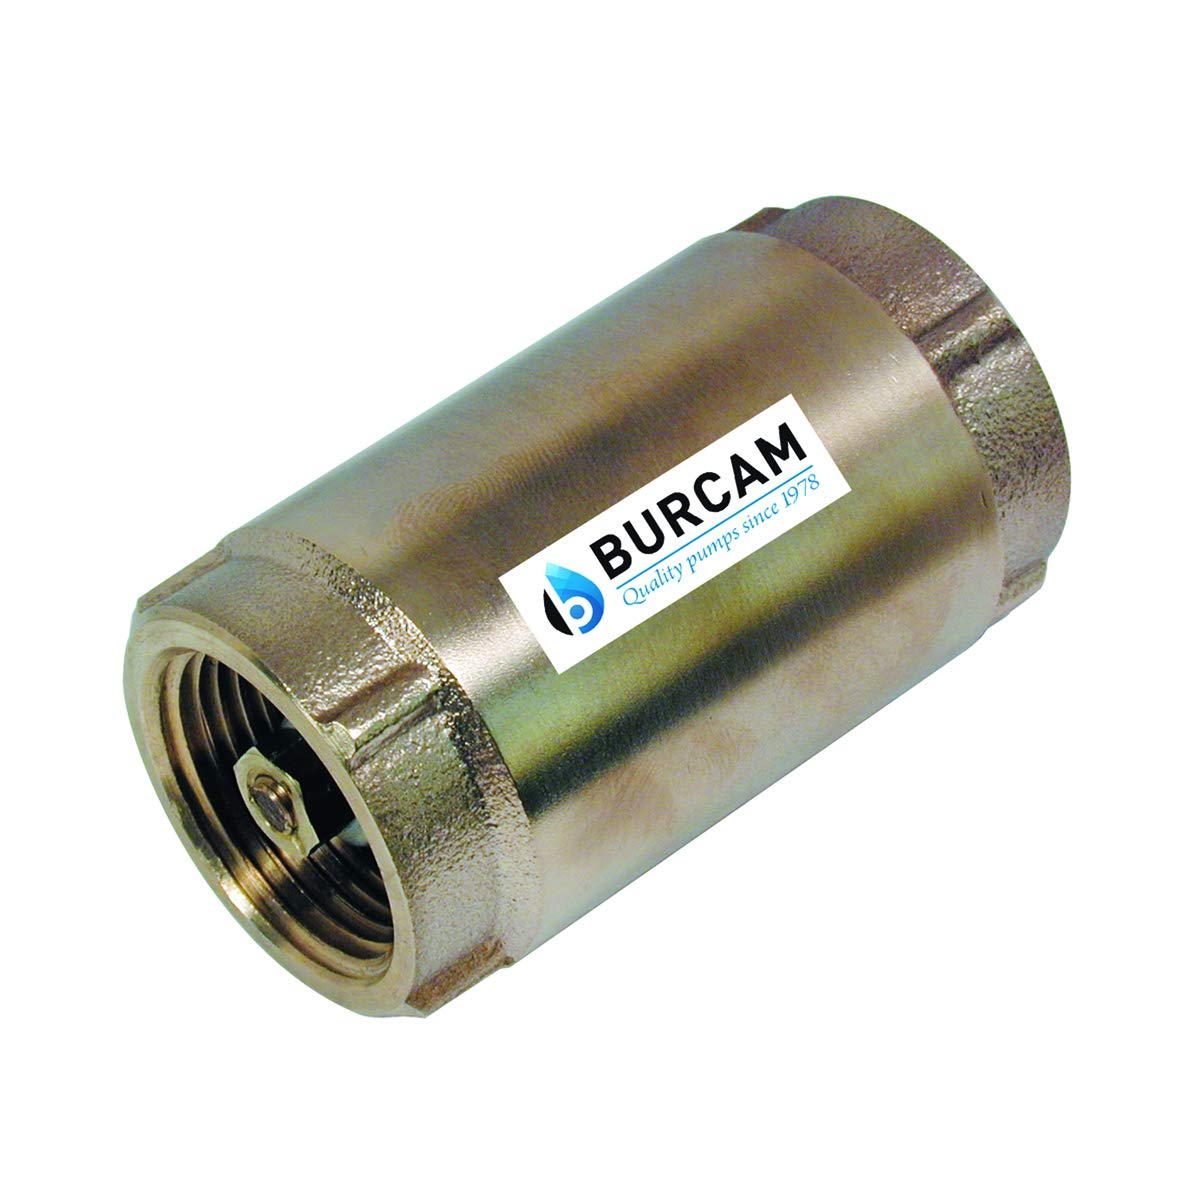 BURCAM 750762 1 1/4'' Lead Free Brass Check Valve, Bronze by Bur-Cam